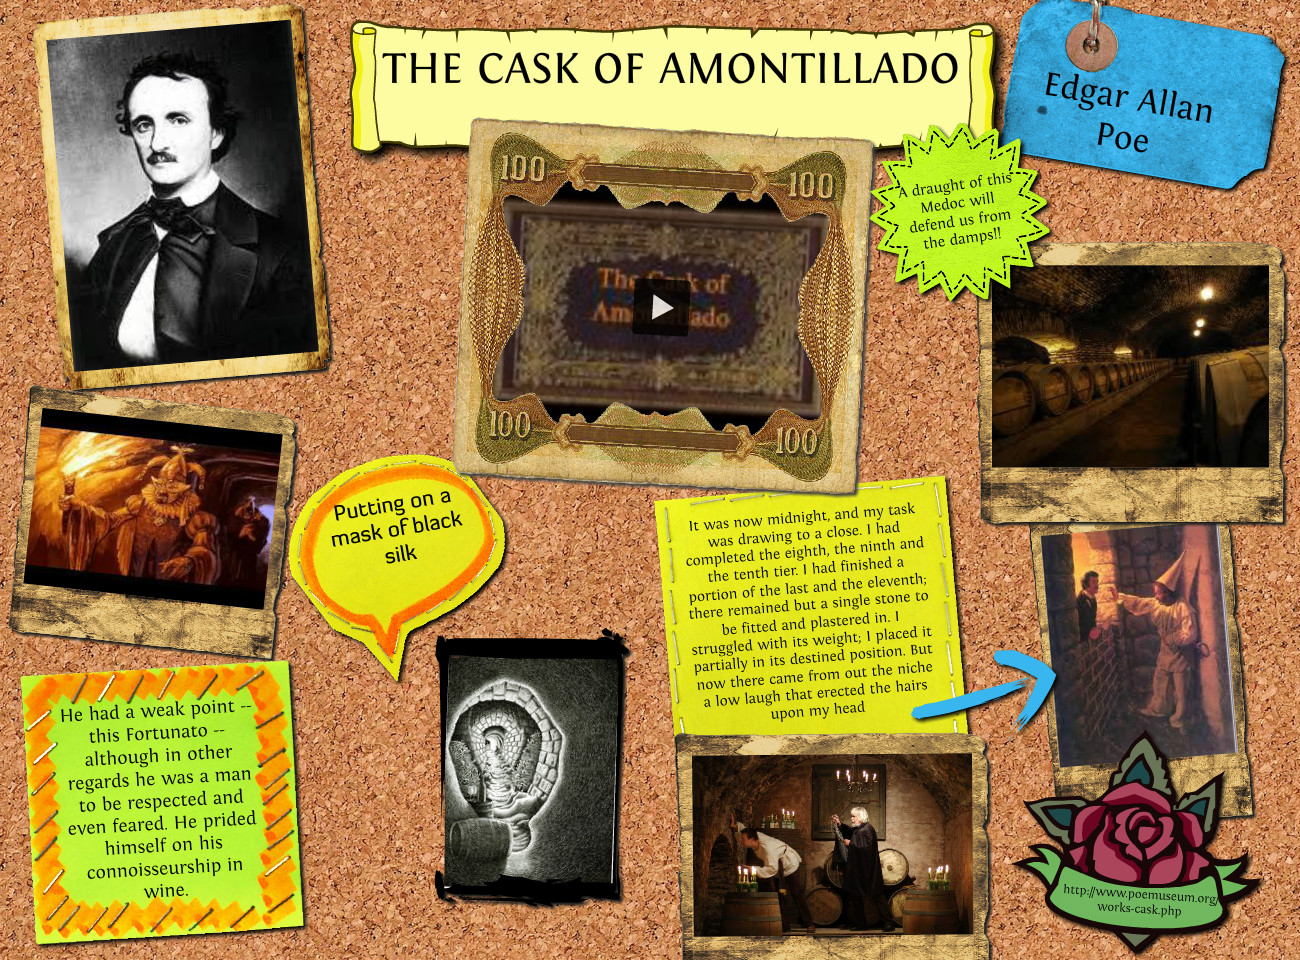 conclusion on the cask of amontillado The cask of amontillado is a very dark and macabre story that tells the reader that revenge can make people do horrible things they might regret edgar allan poe is considered to be the father of southern gothic and has influenced many writers.